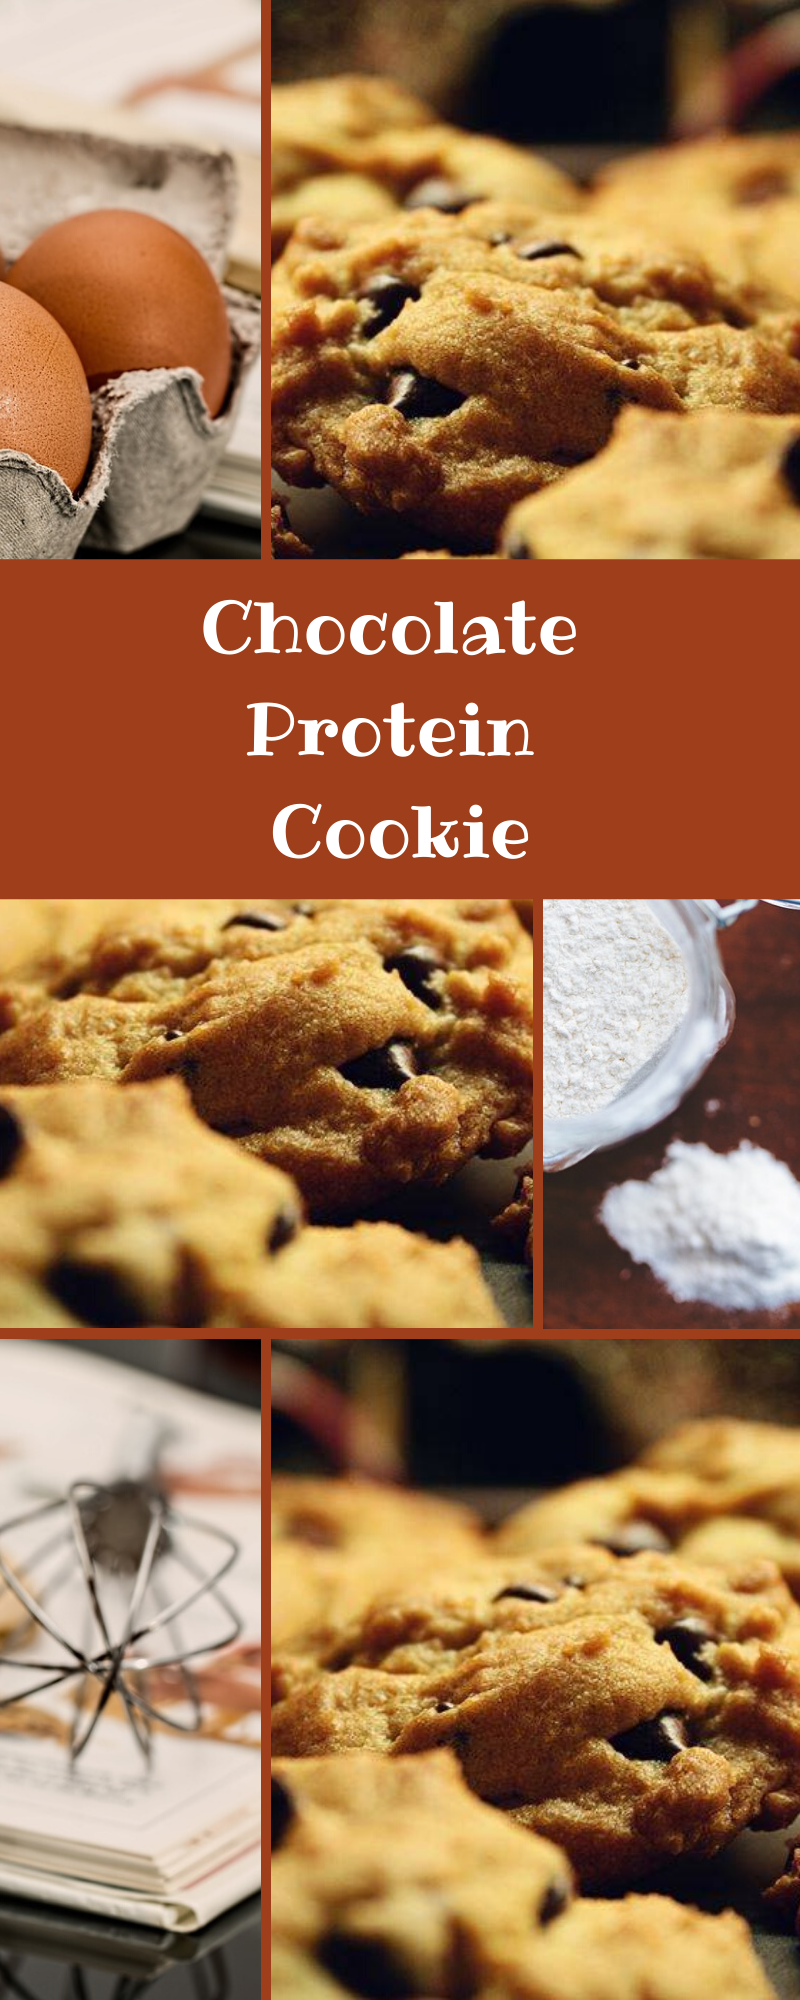 Chocolate Protein Cookie